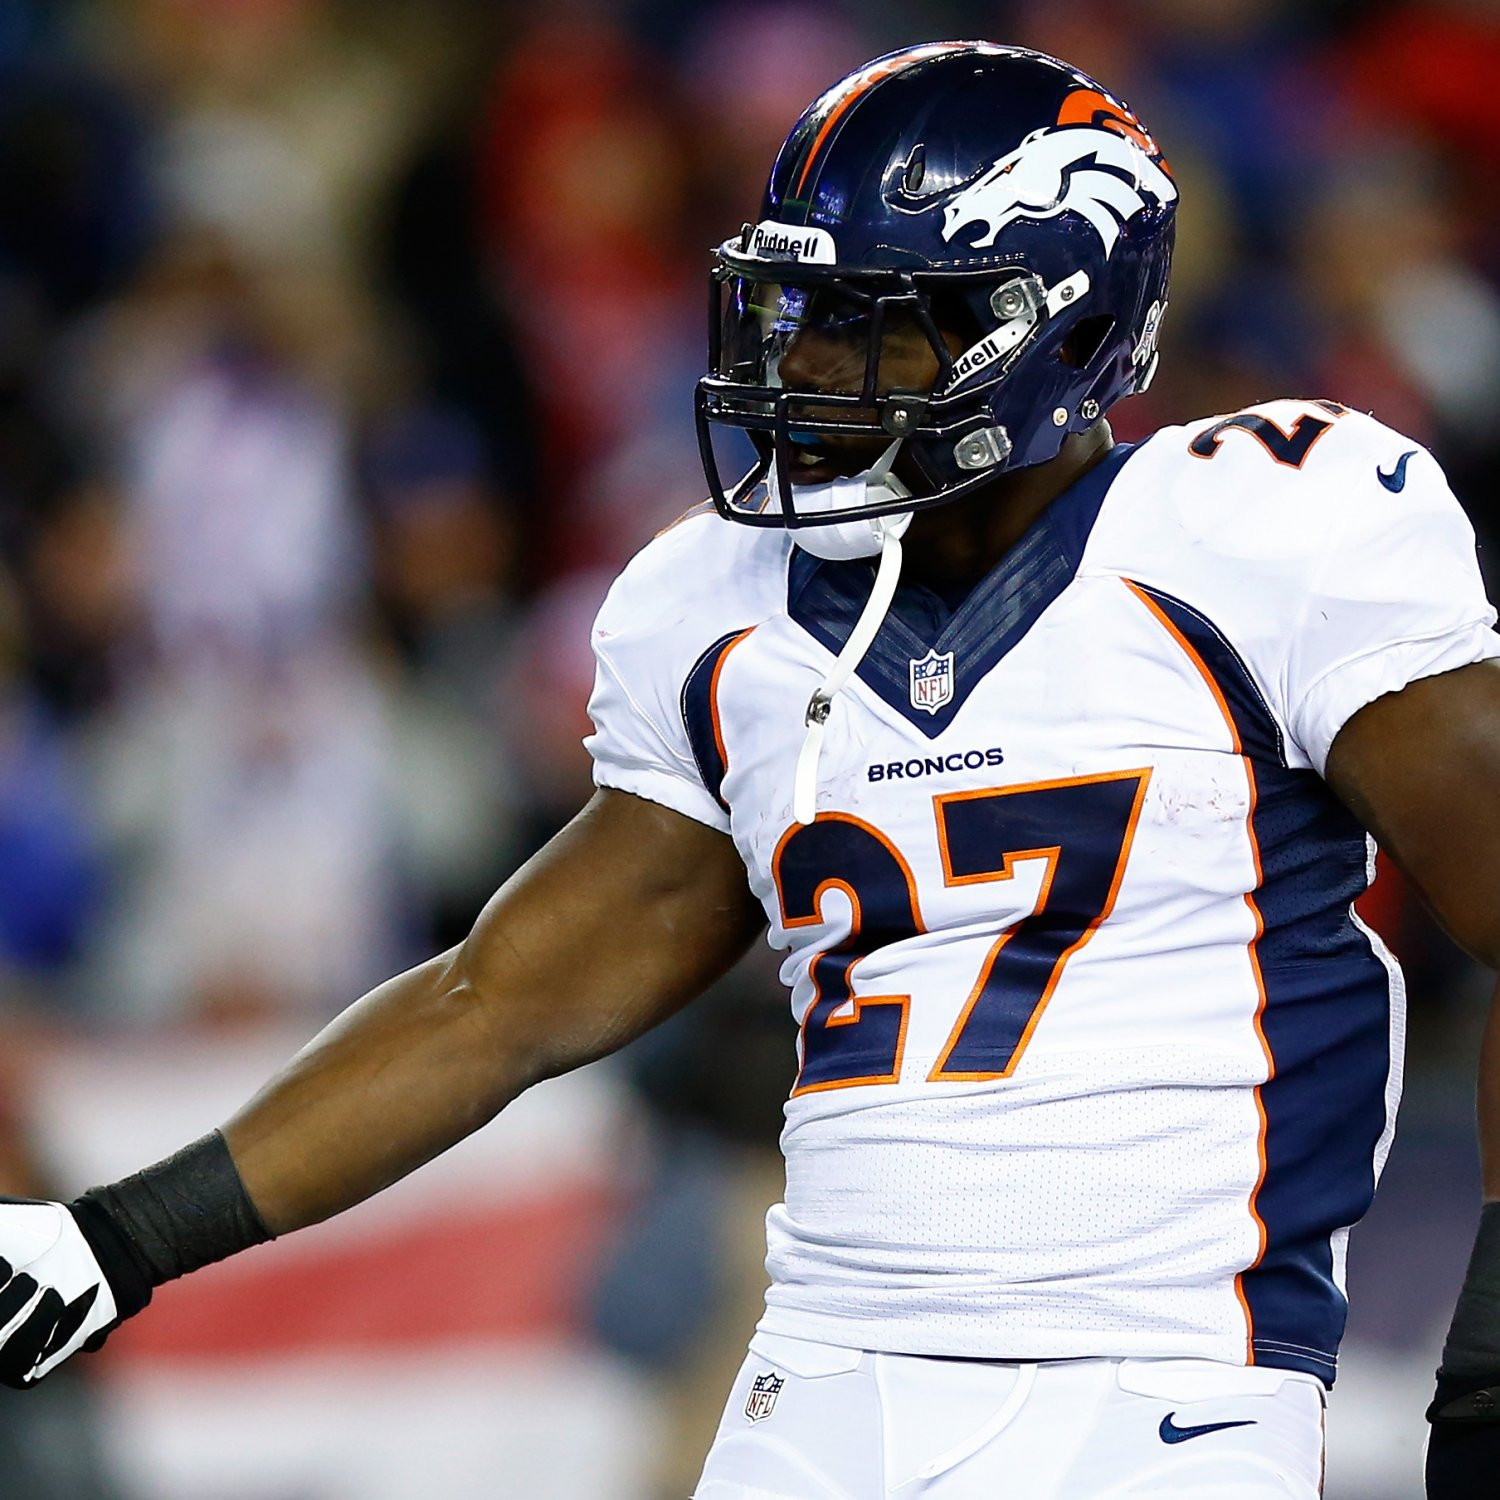 Denver Broncos Re Grading Their Key 2013 Offseason: 10 Contracts Denver Broncos Must Re-Evaluate This